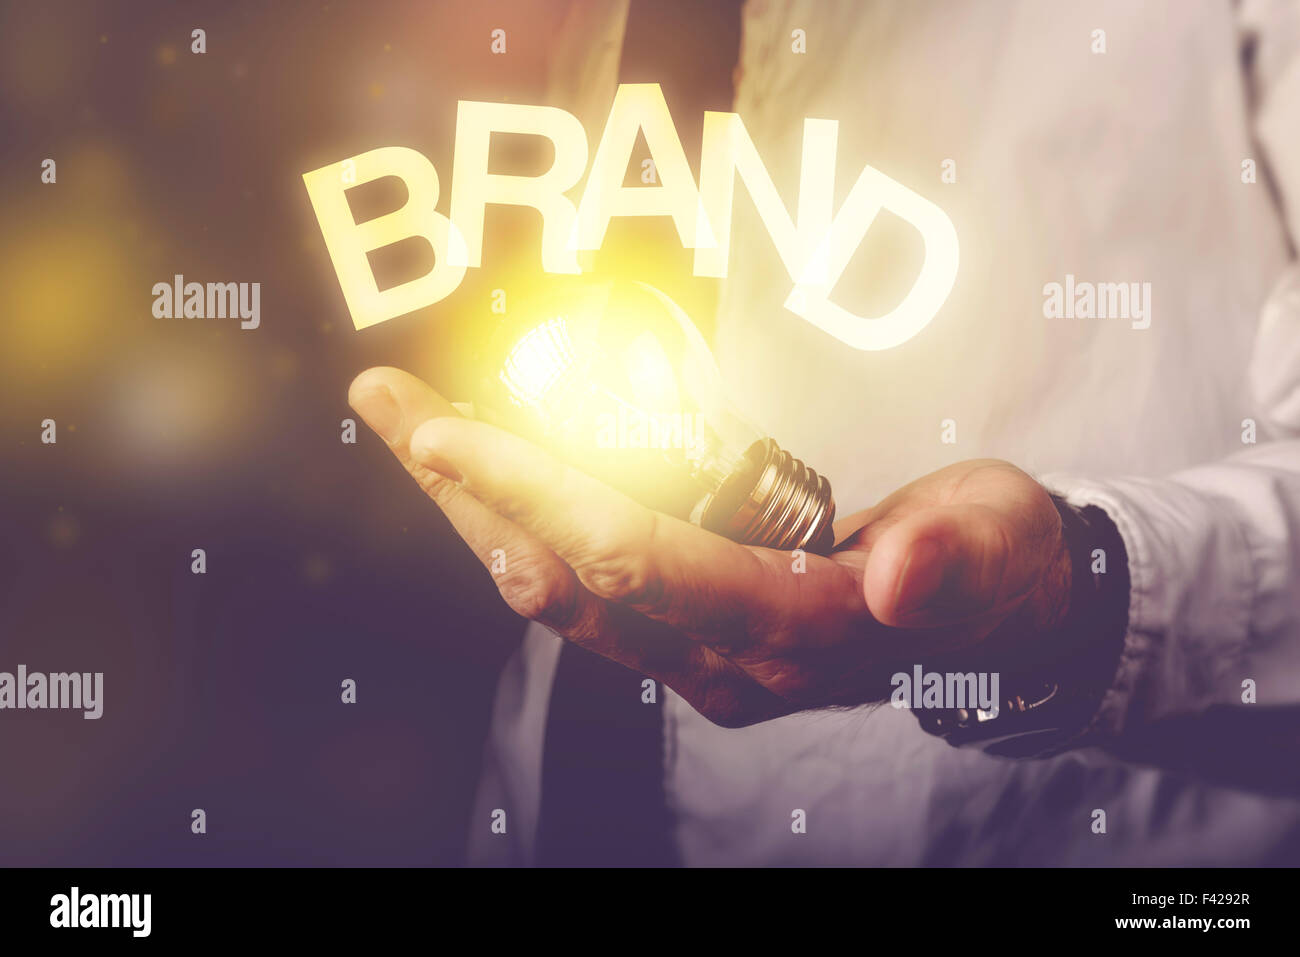 Brand idea concept with businessman holding light bulb, retro toned image, selective focus. - Stock Image